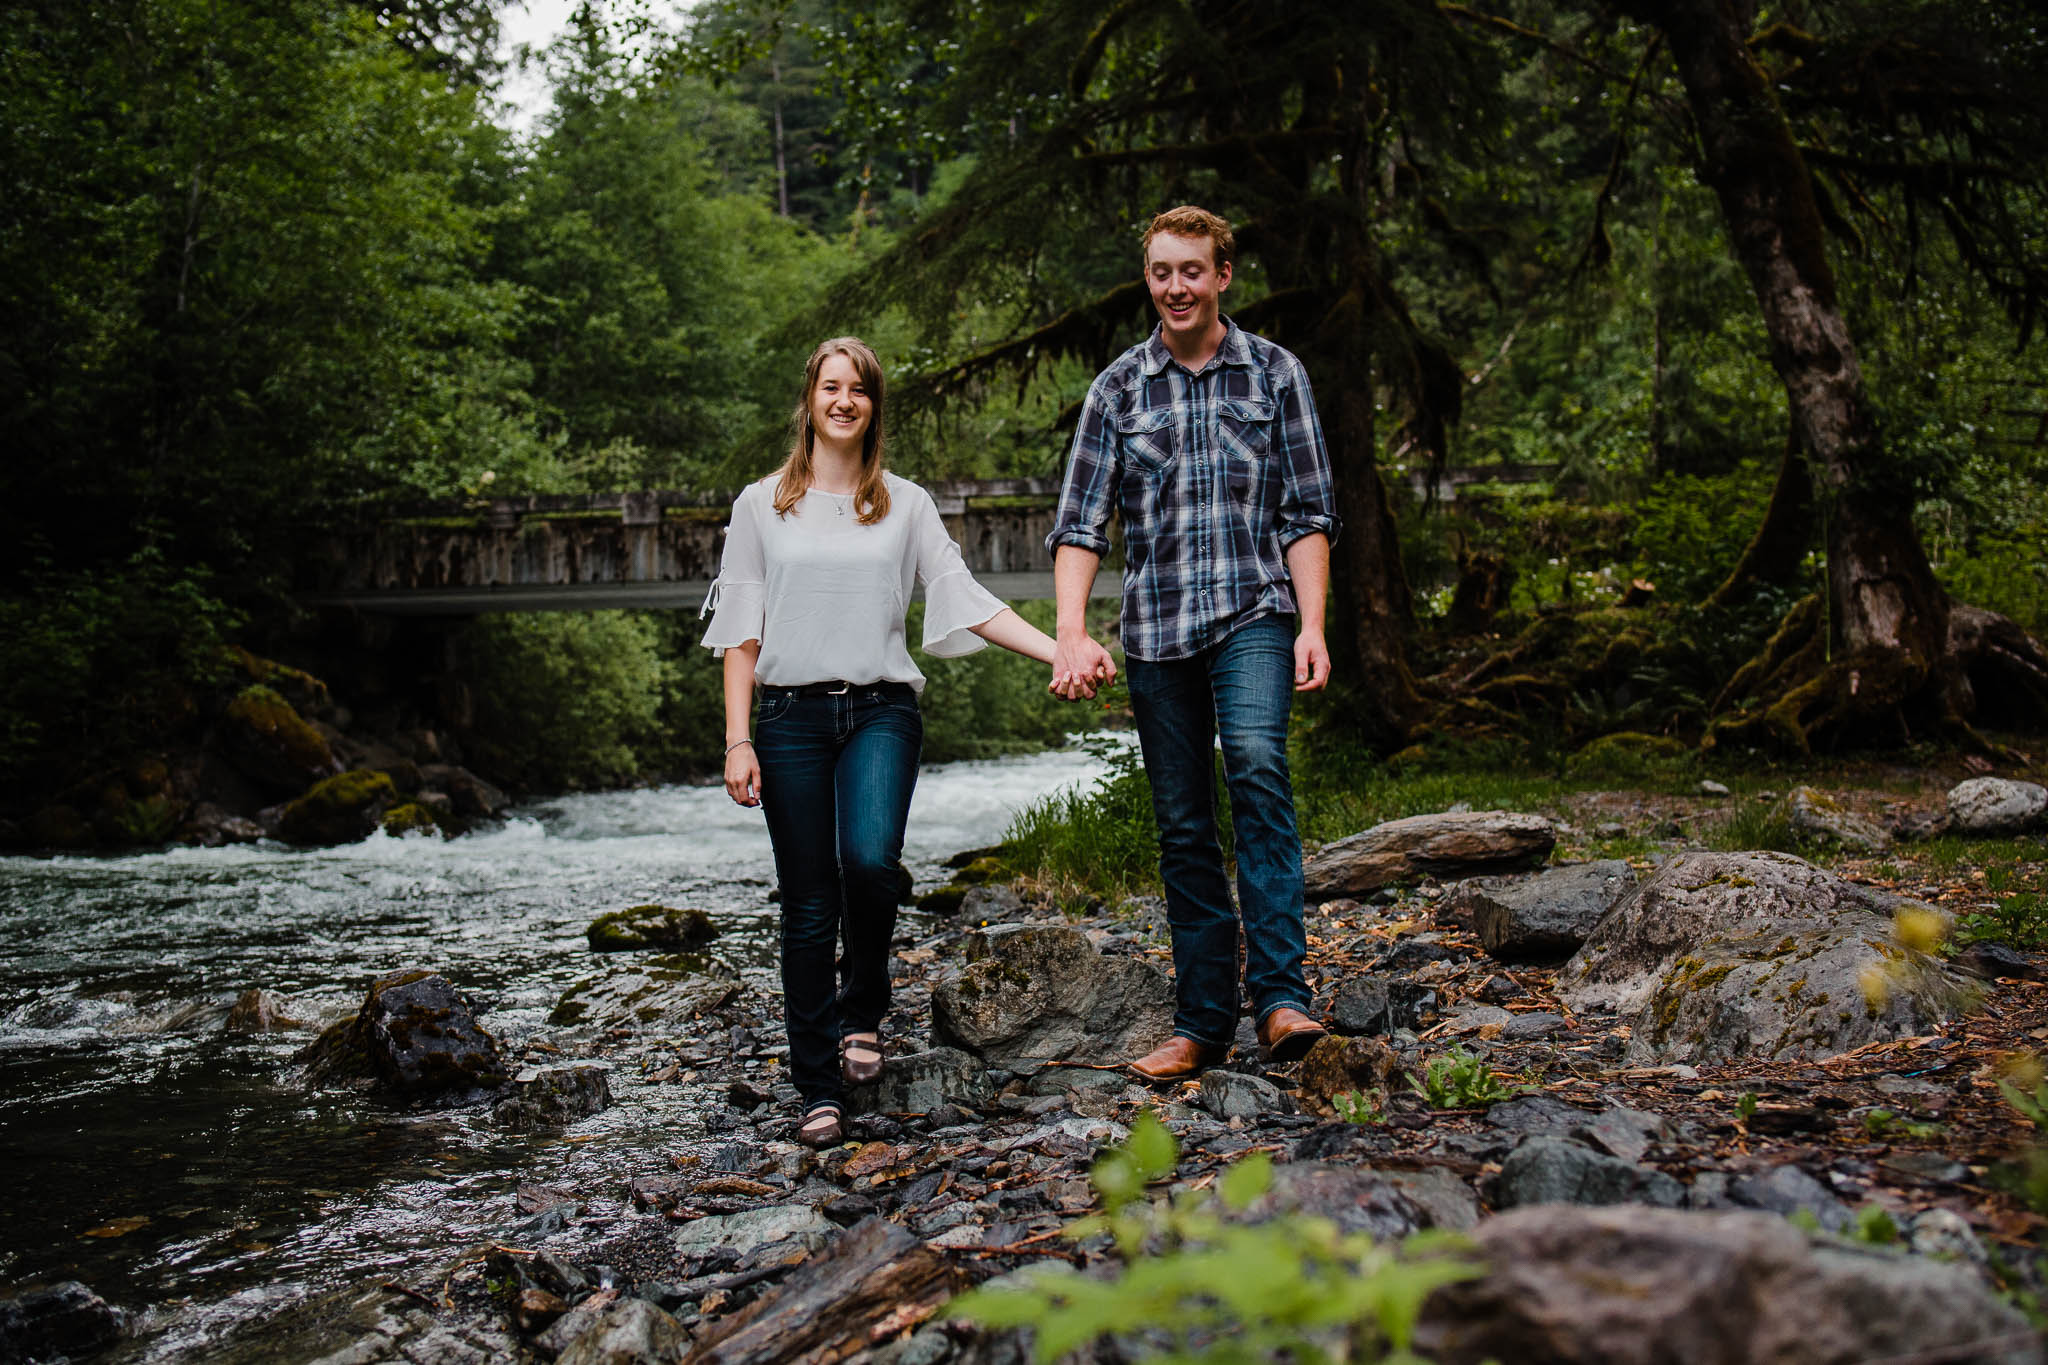 Young couple holding hands wearing blue plaid and white shirt by  Folley Creek near Folley Lake in Chilliwack British Columbia during outdoor engagement photography session in the mountains with Mimsical Photography.    Outdoor adventure photographer based in Langley, British Columbia. Real fun engagement photos for outdoor enthusiasts in the lower mainland